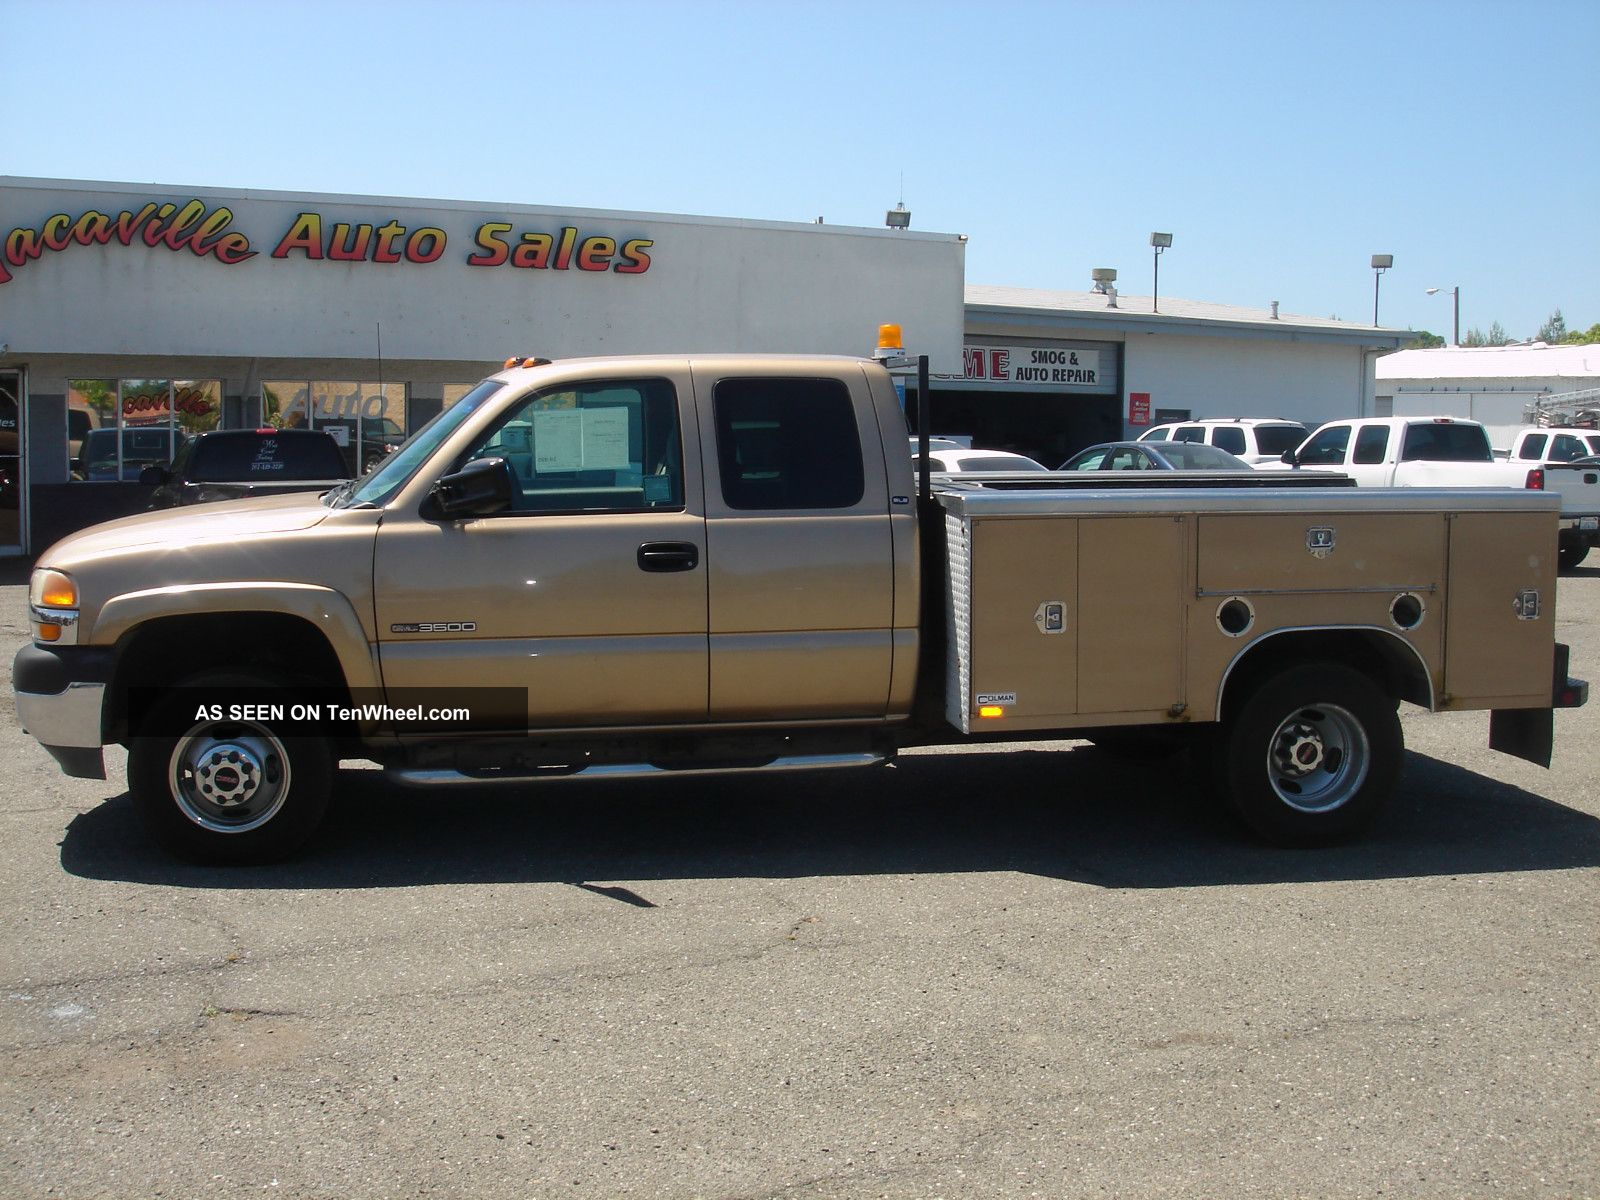 2001 Gmc Sierra 3500hd Dually 4x4 Extended Cab Utility